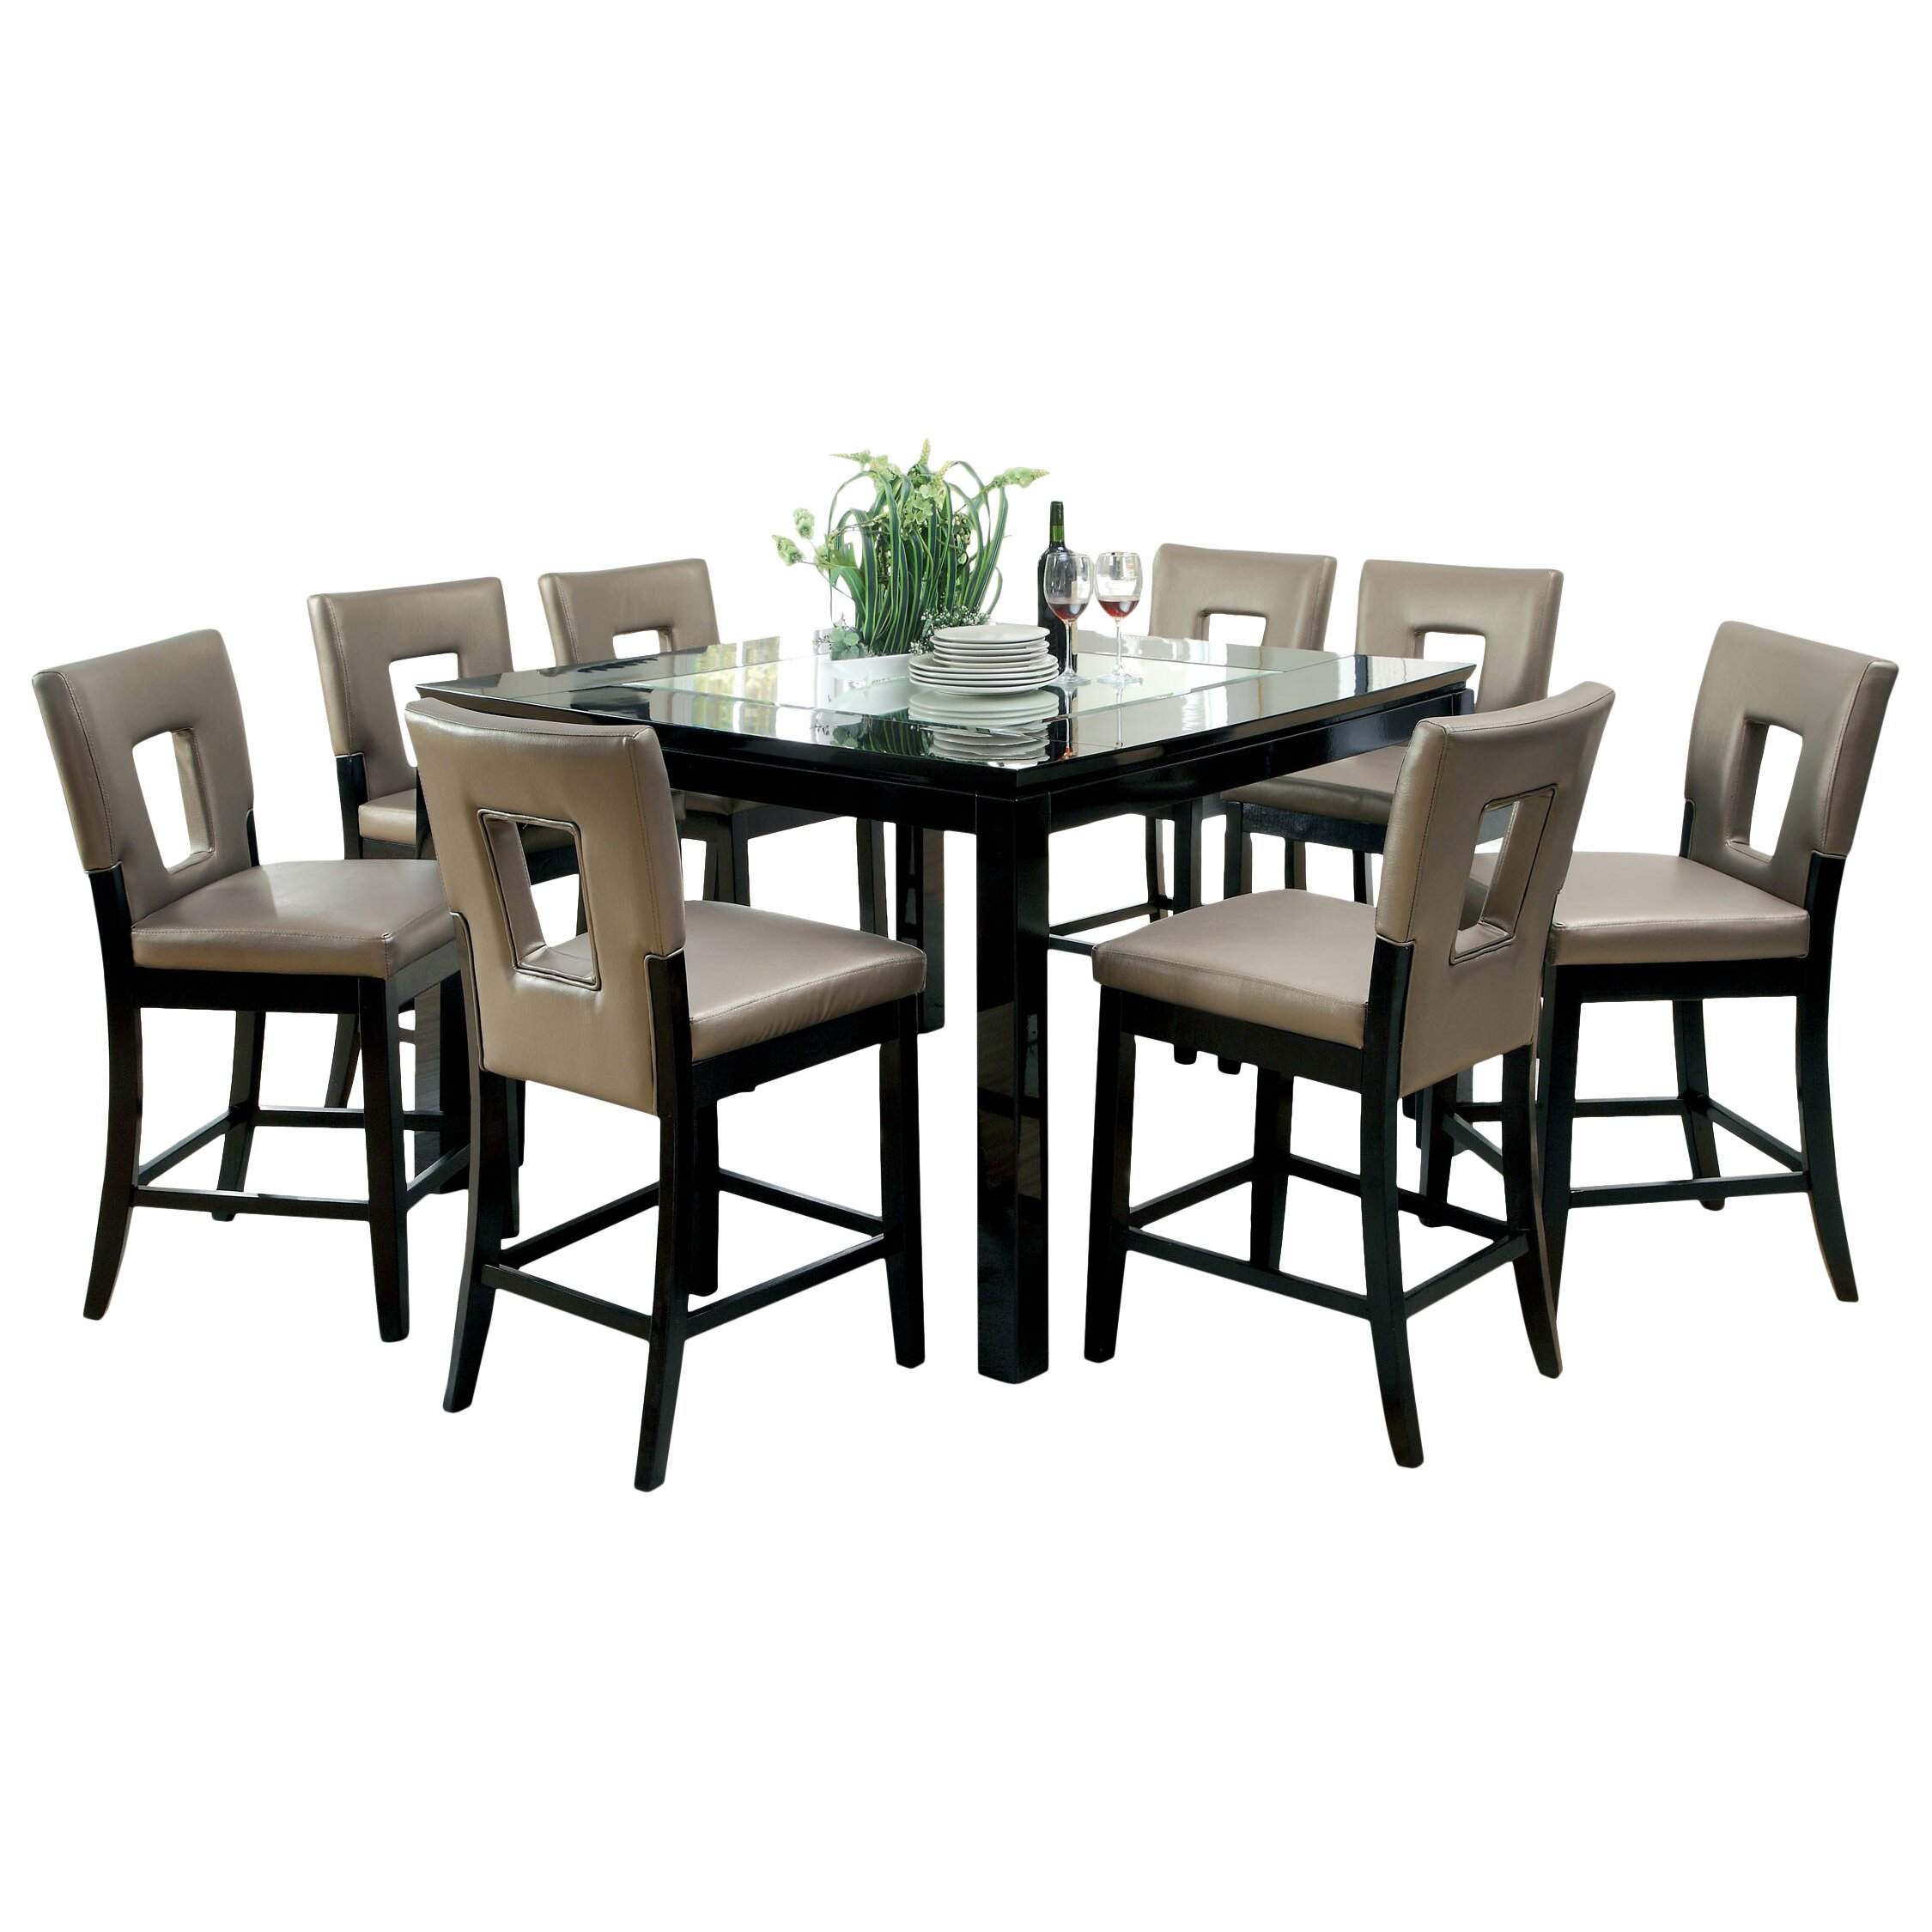 9 piece counter height dining room sets dining tables 7 for Dining room furniture 9 piece